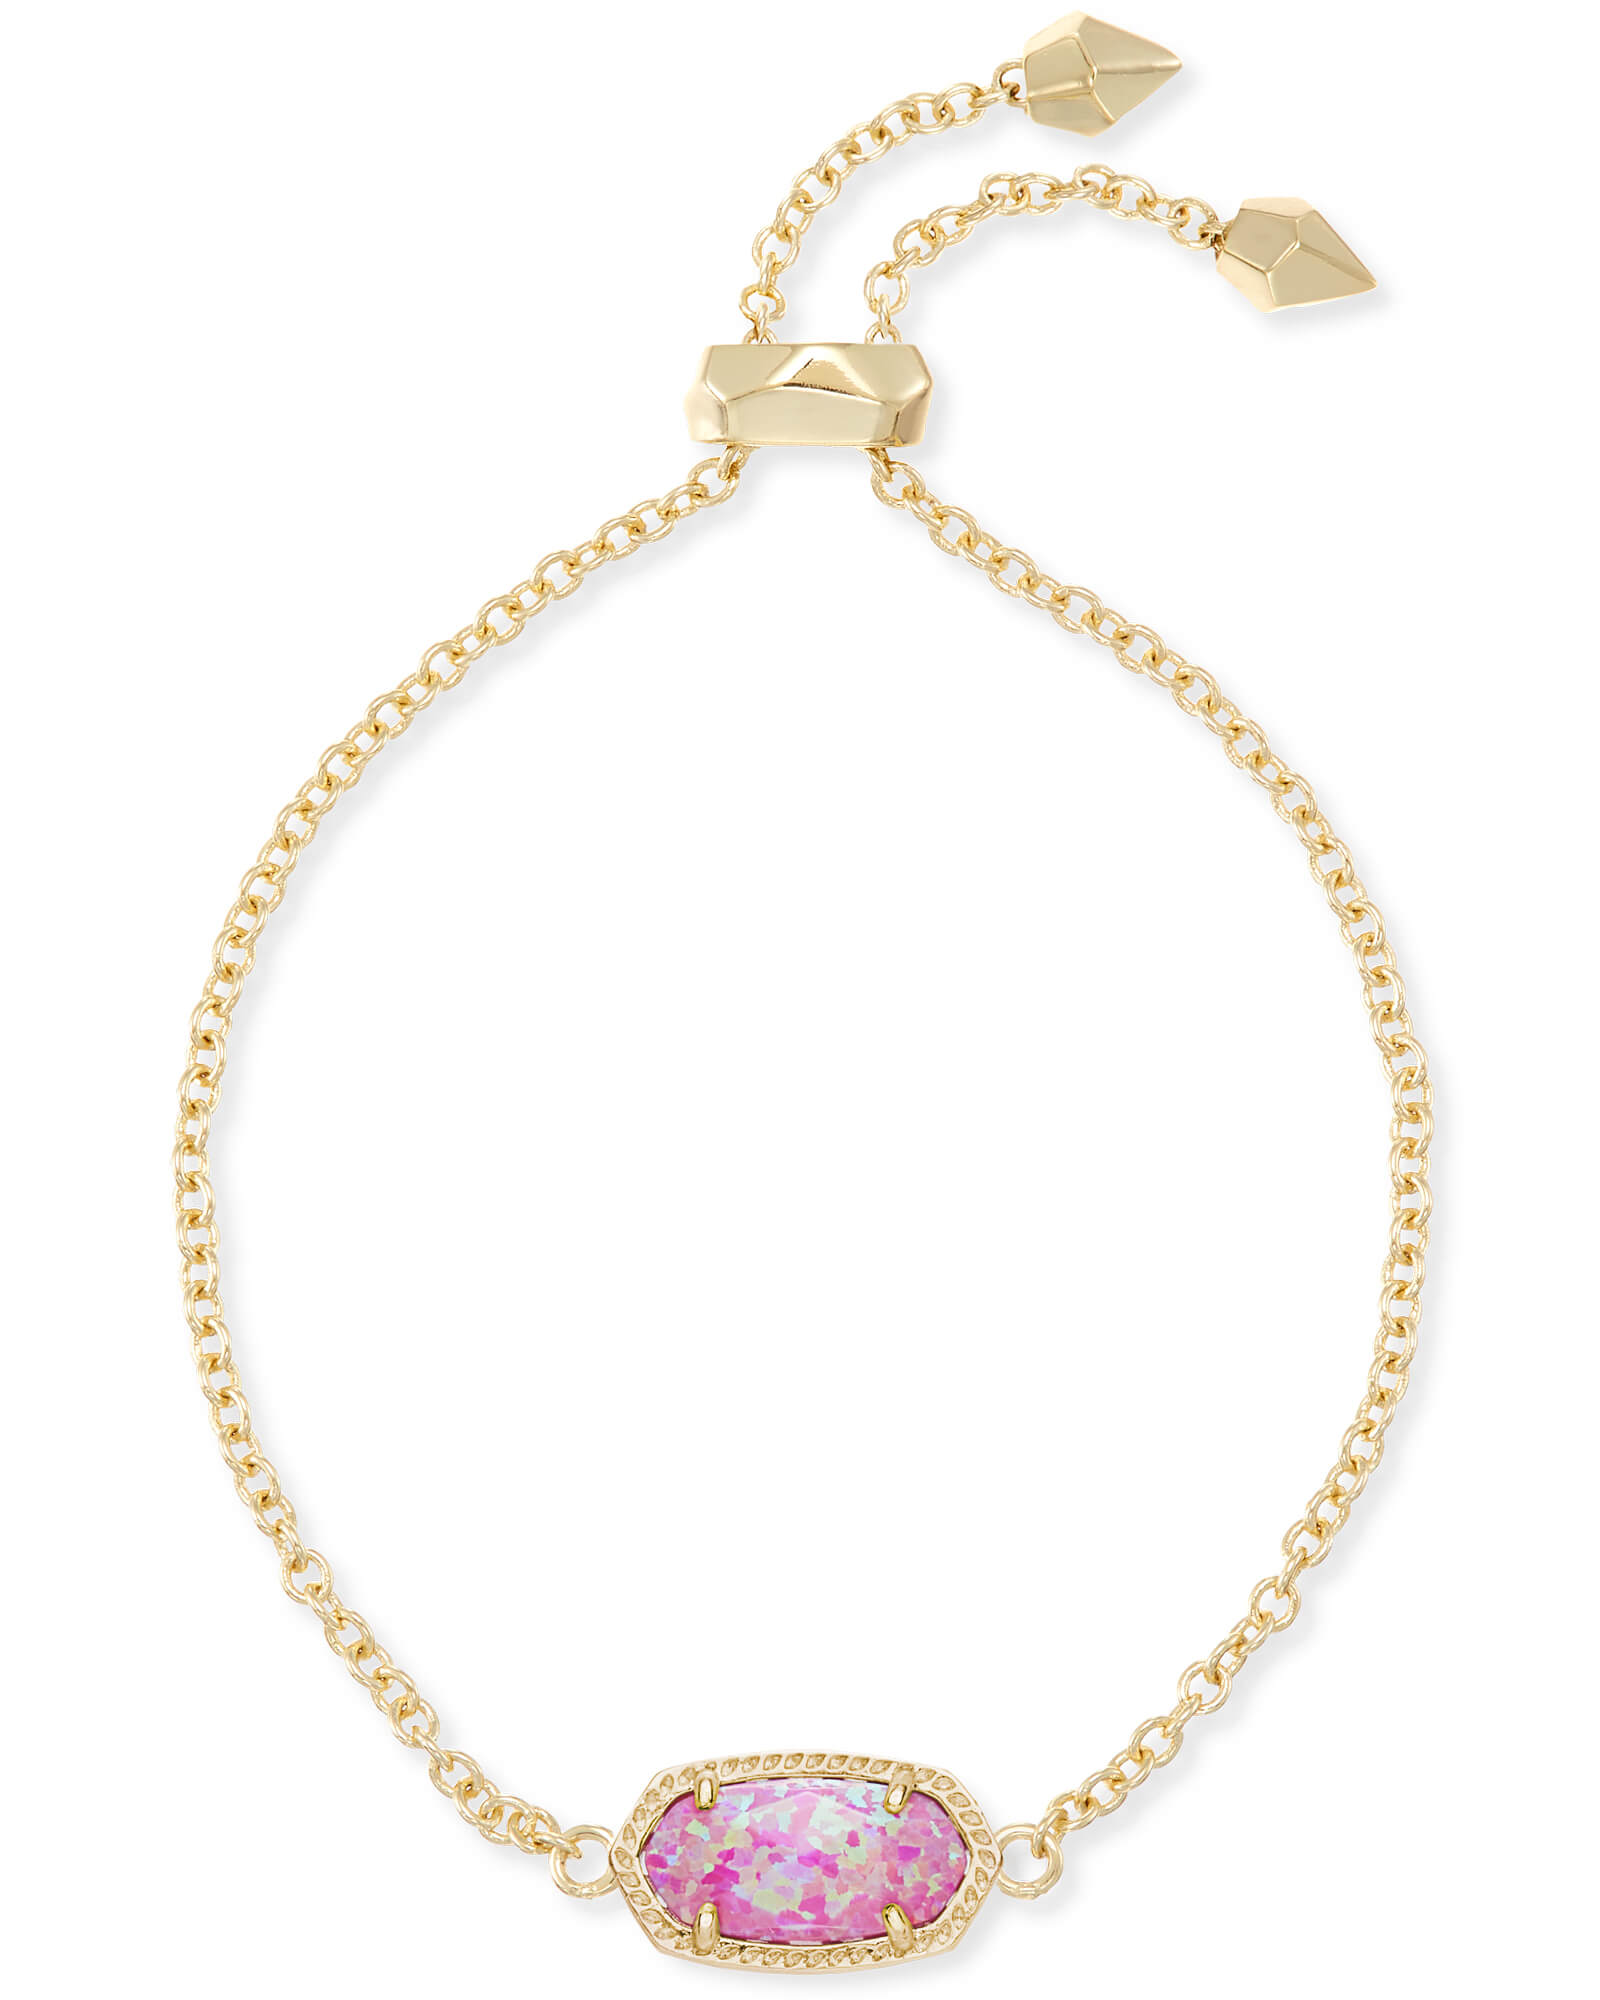 Elaina Adjustable Chain Bracelet in Gold